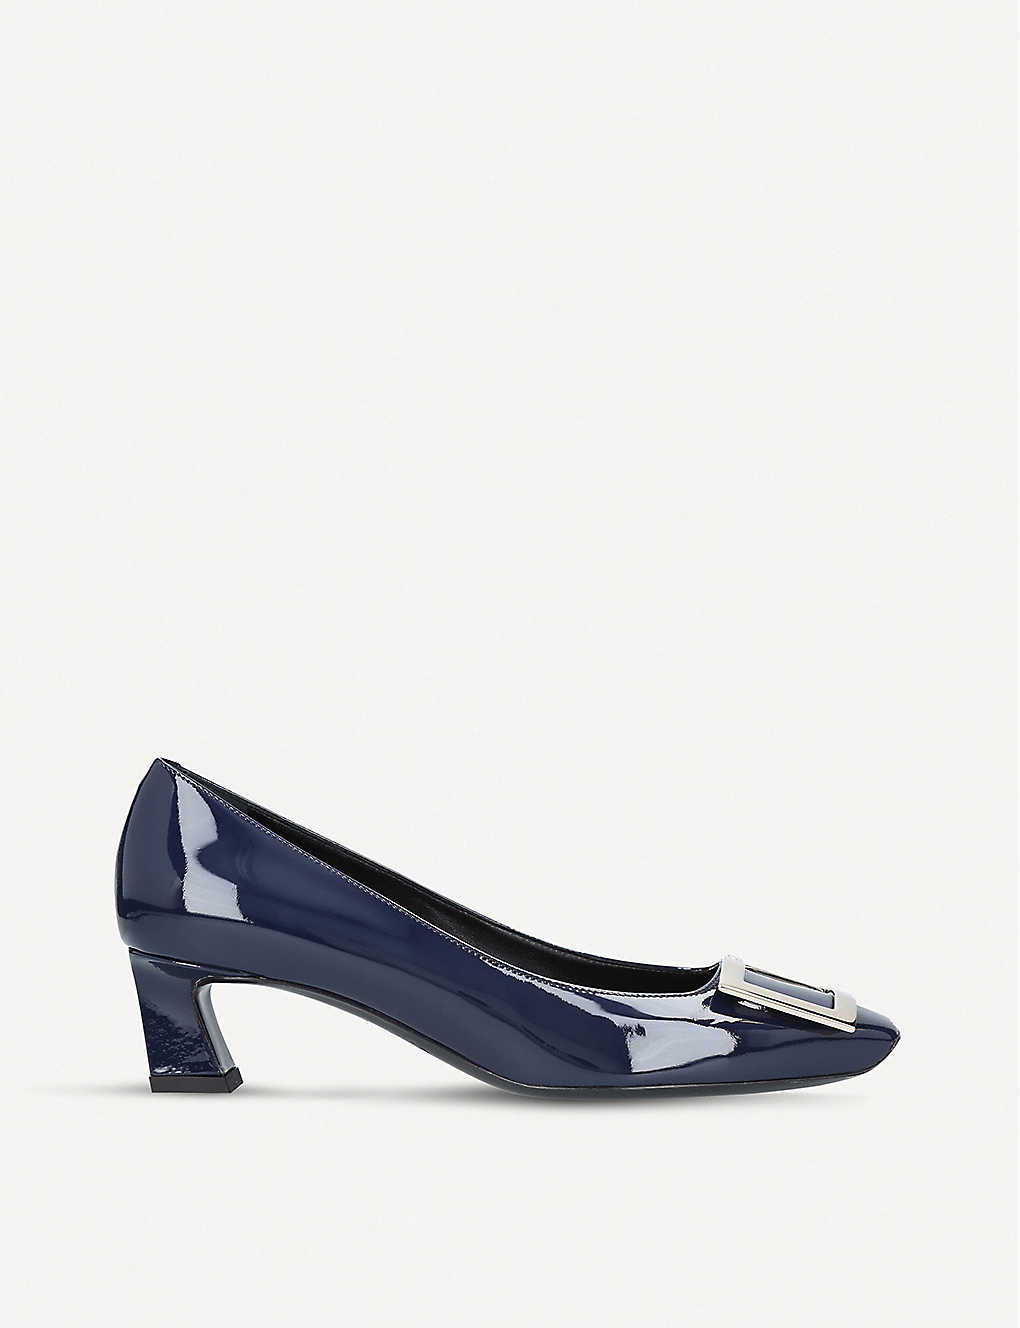 Trompette patent leather courts(6311682)